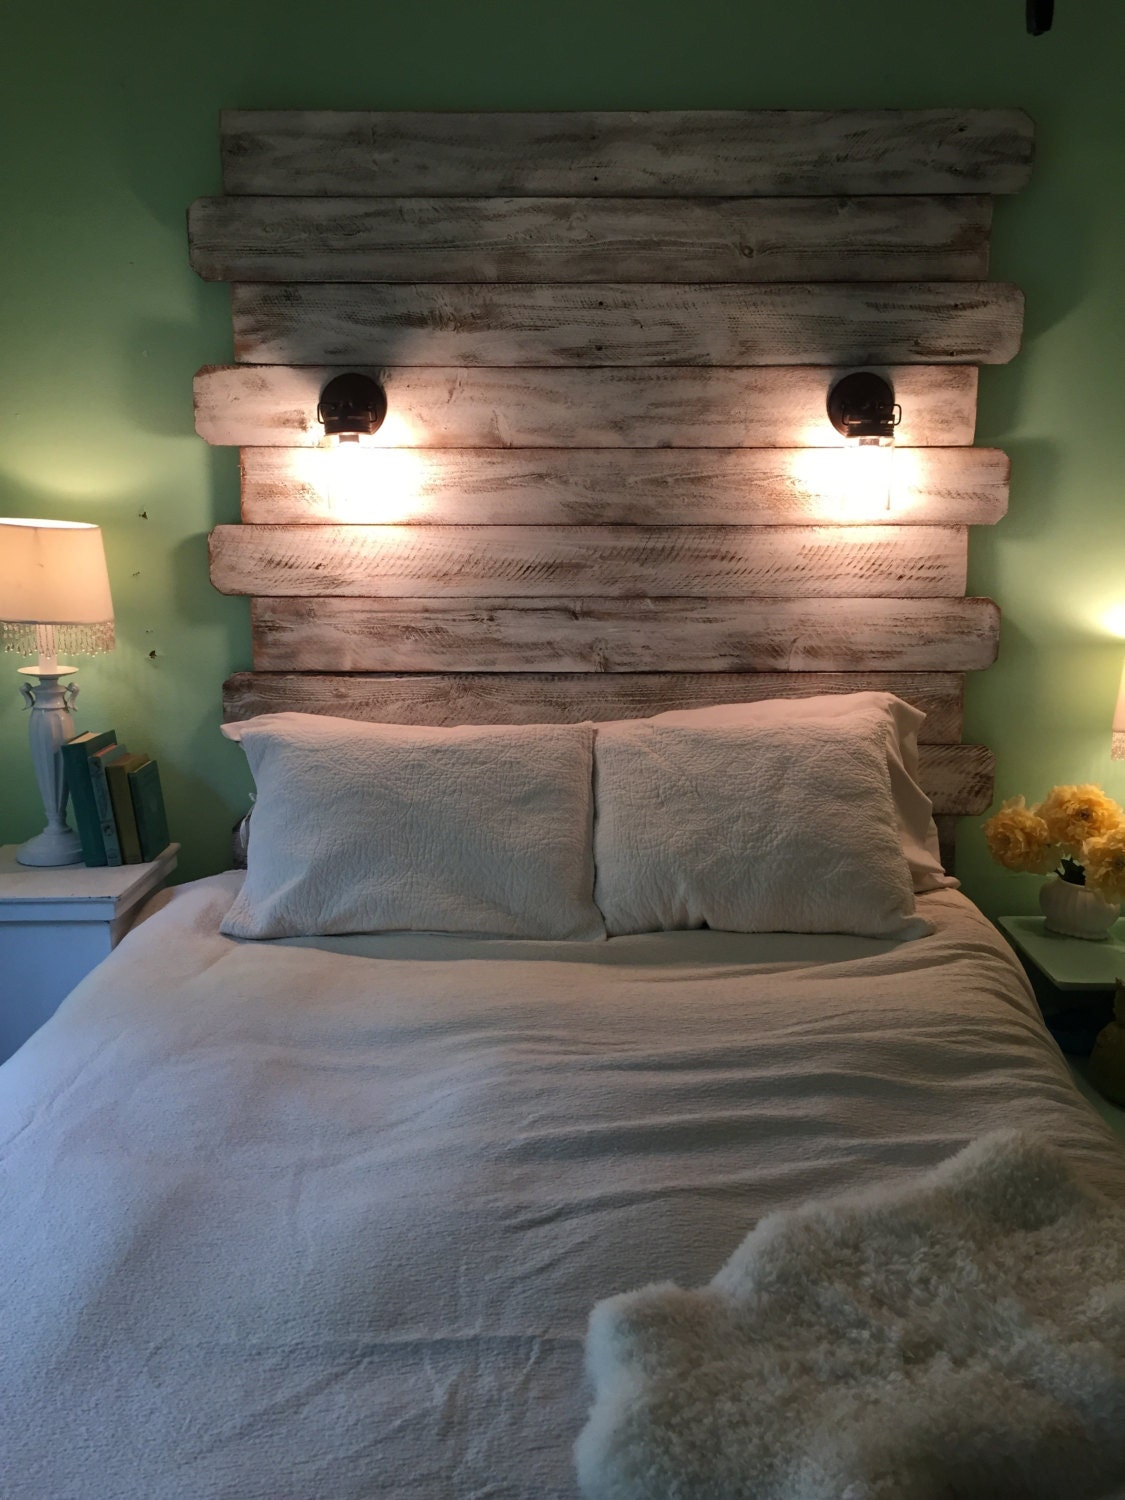 striking from become sure of this designer is to series pin headboard multi functional vahalla centerpiece bedroom your the king sized piece floating